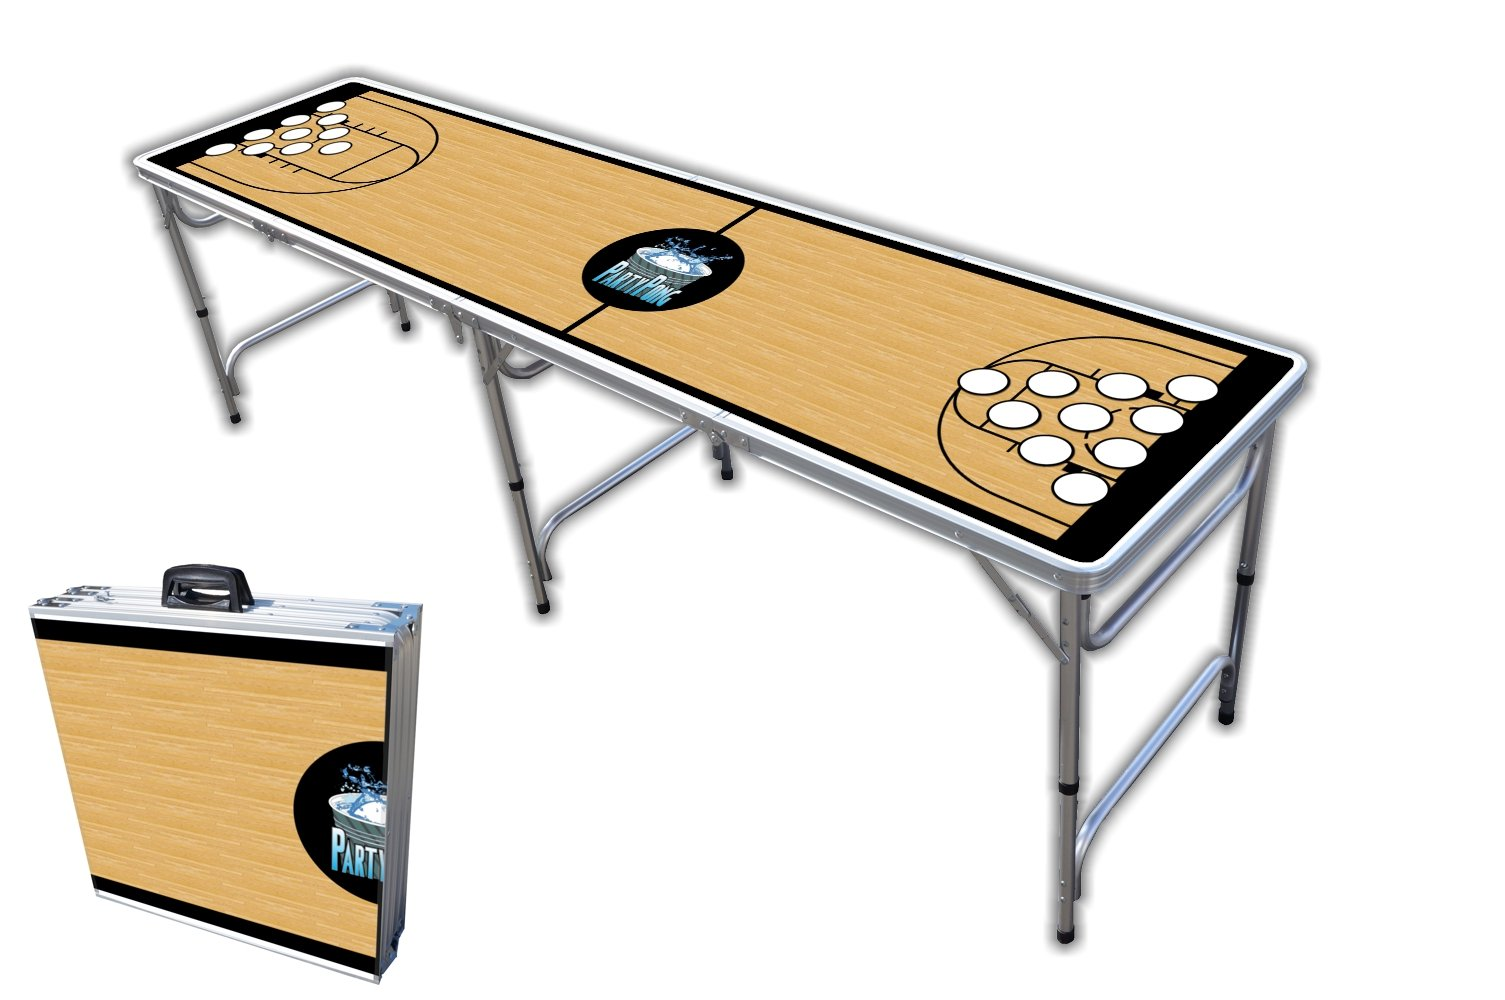 8-Foot Professional Beer Pong Table w/Cup Holes - Basketball Court Graphic by PartyPongTables.com